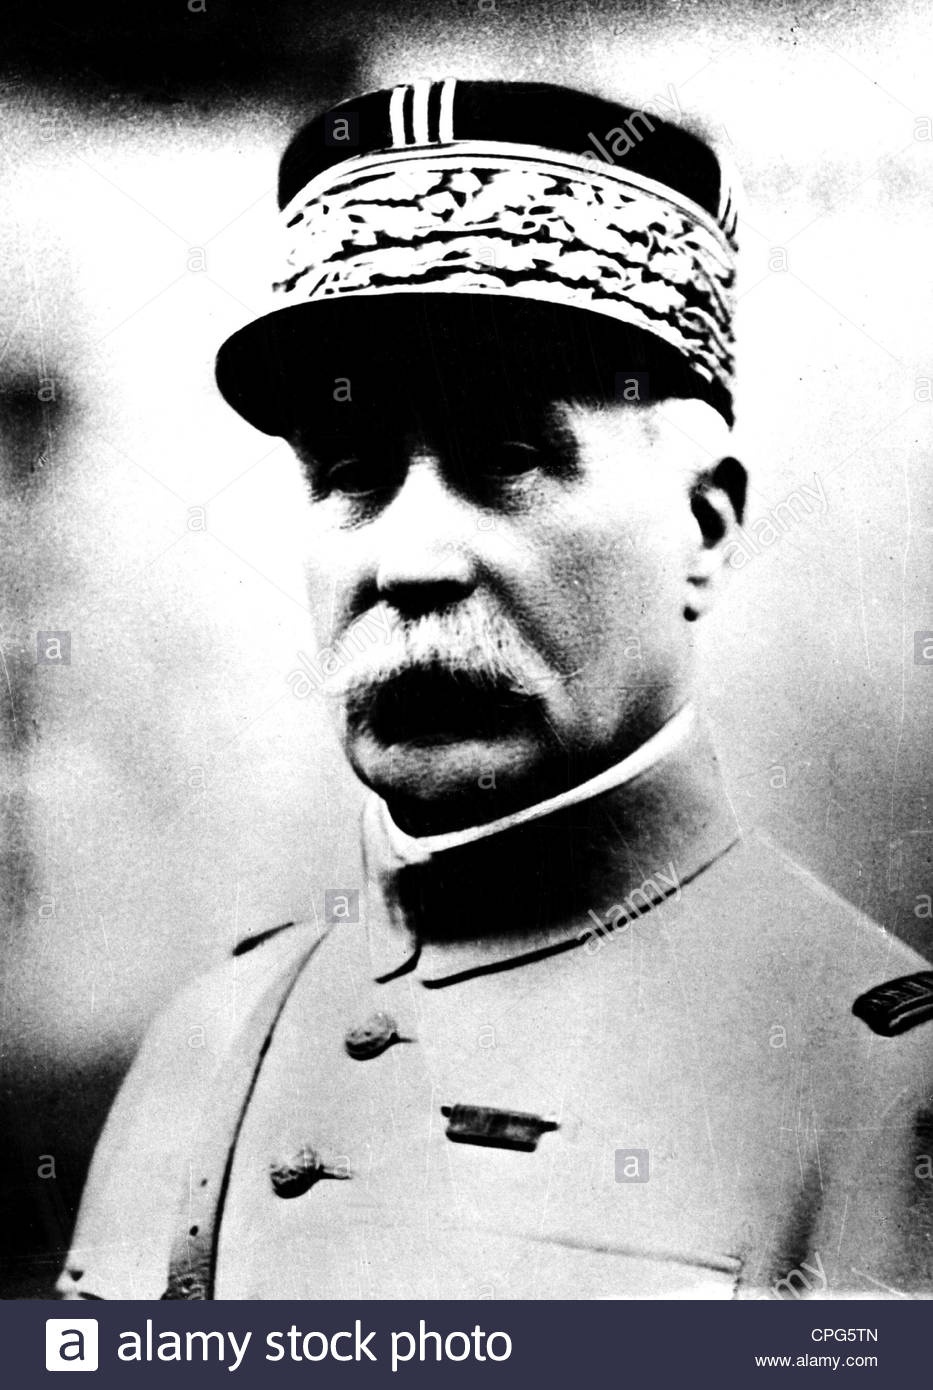 Petain, Henri Philippe, 24.4.1856 - 23.7.1953, French general and politician, commander in chief of the French army - Stock Image